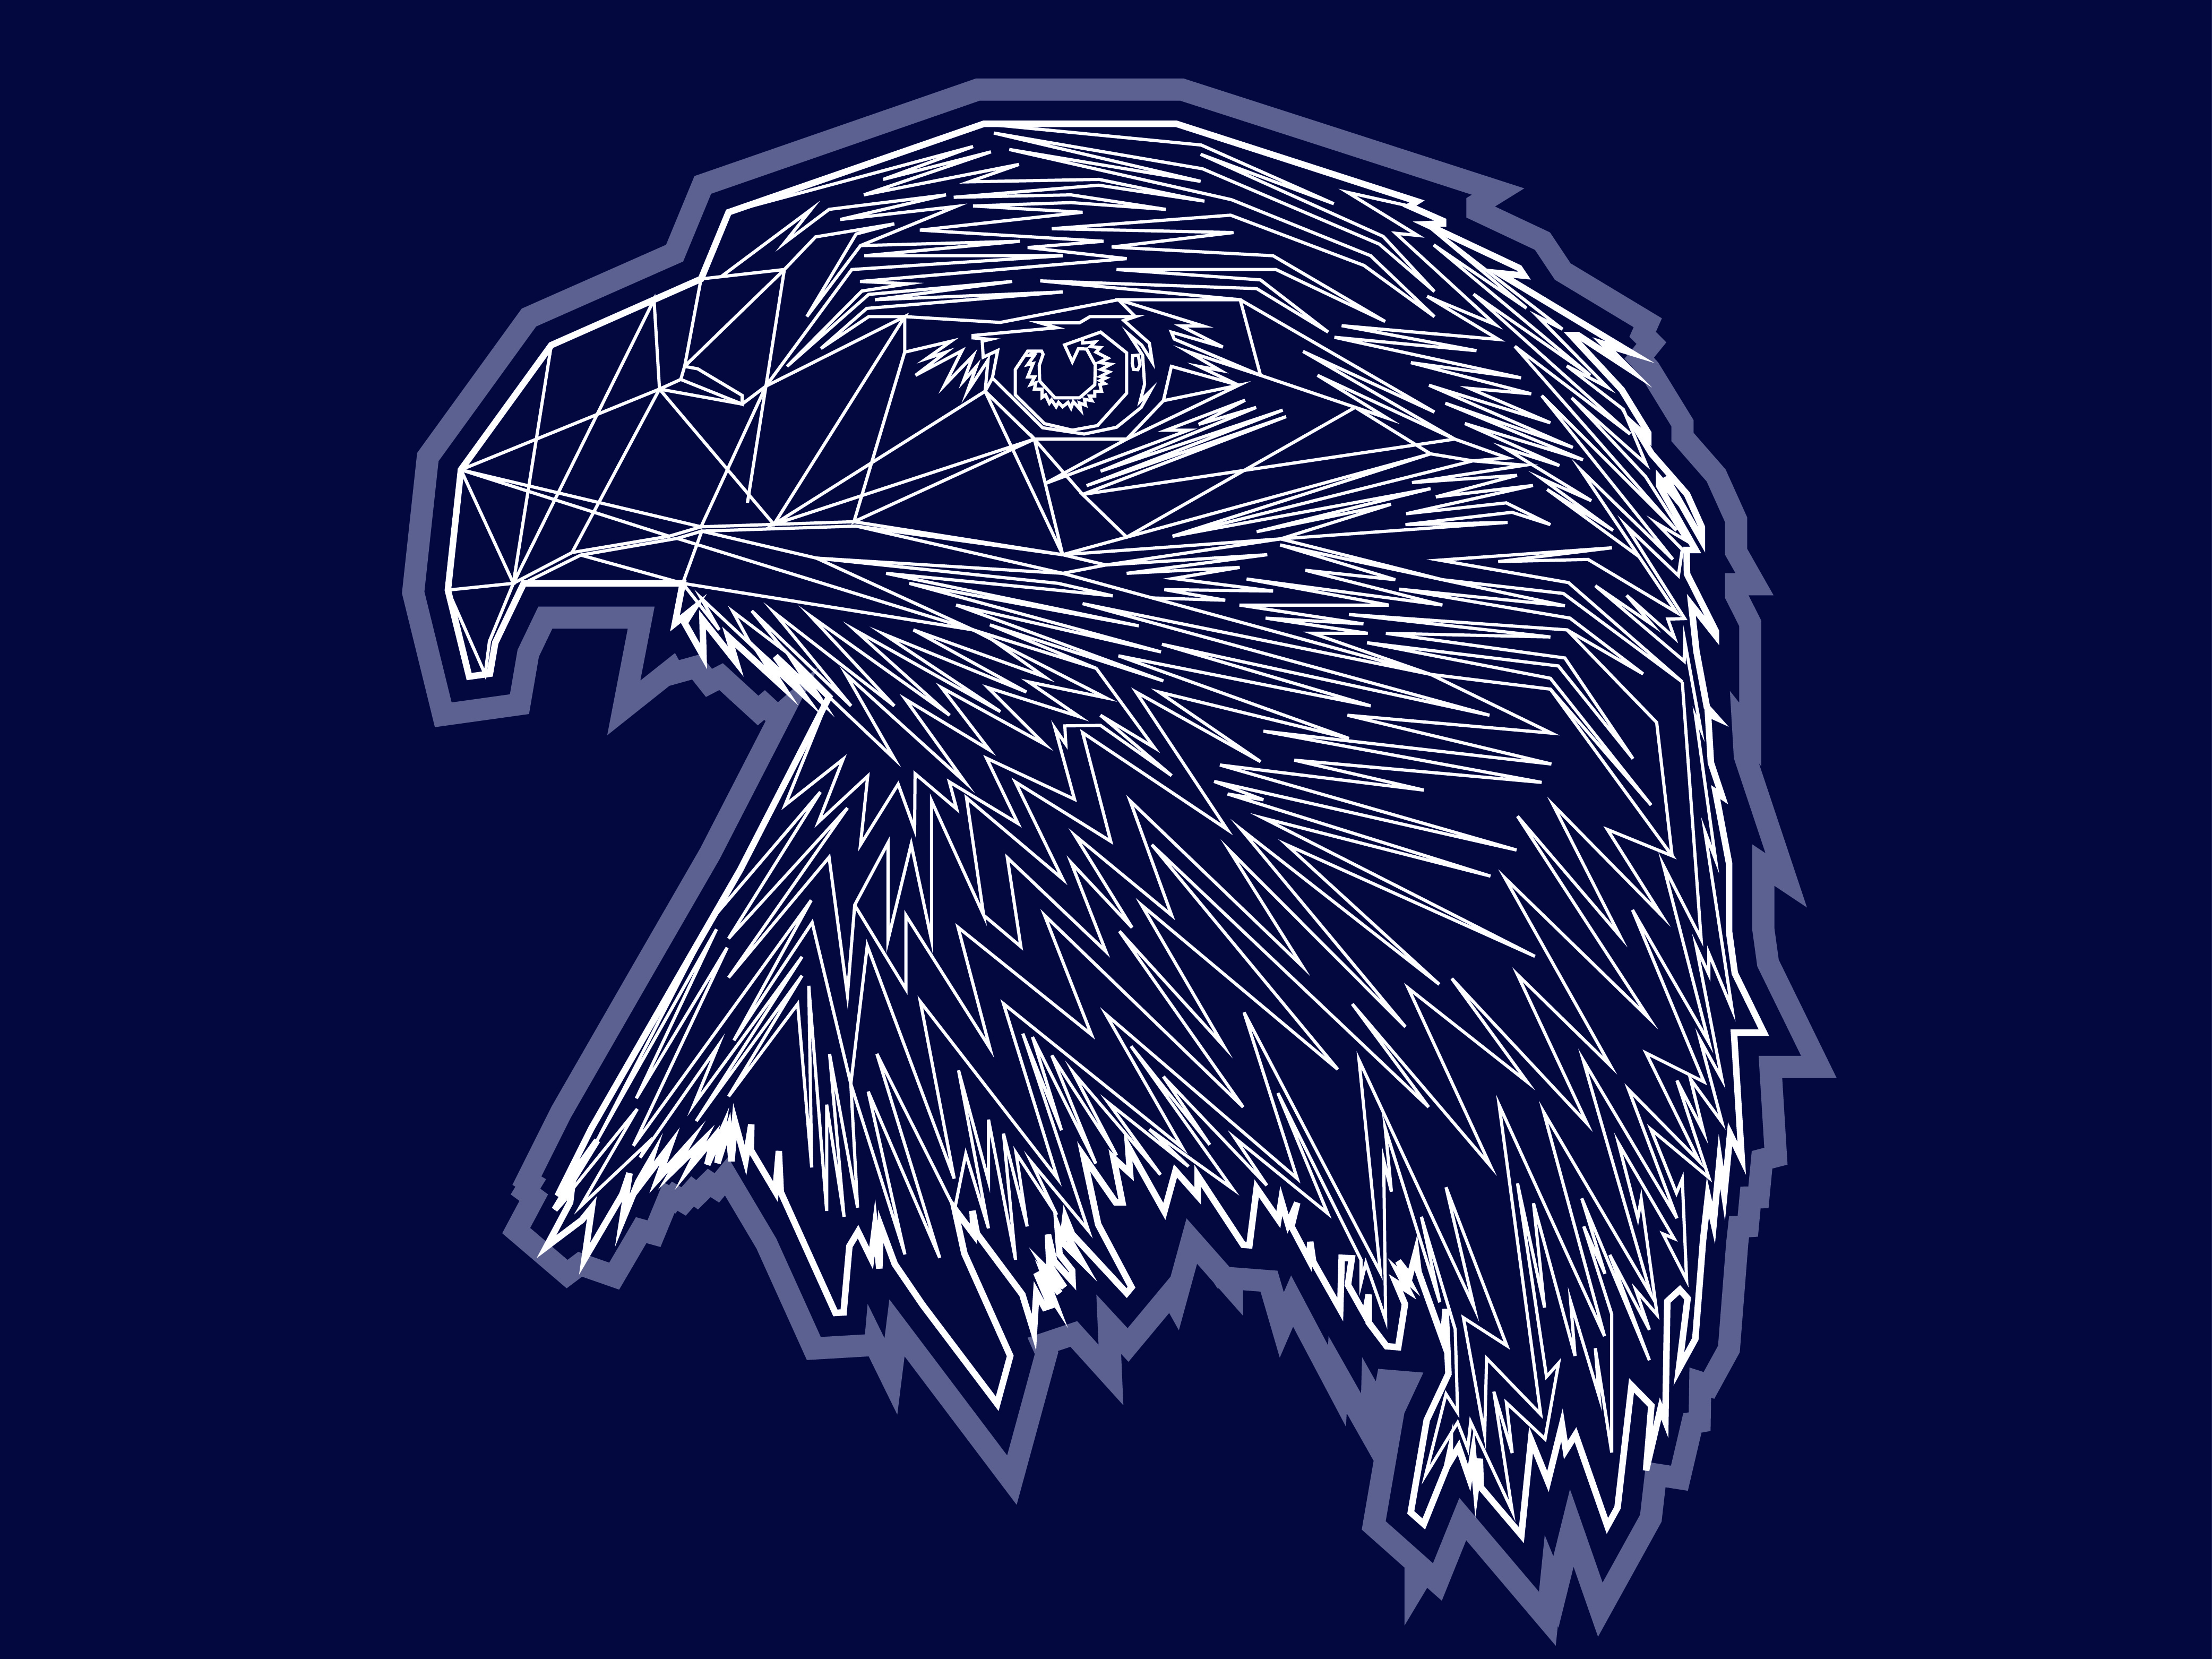 Download Free Eagle Abstract Graphic By Rafcreative3 Creative Fabrica for Cricut Explore, Silhouette and other cutting machines.